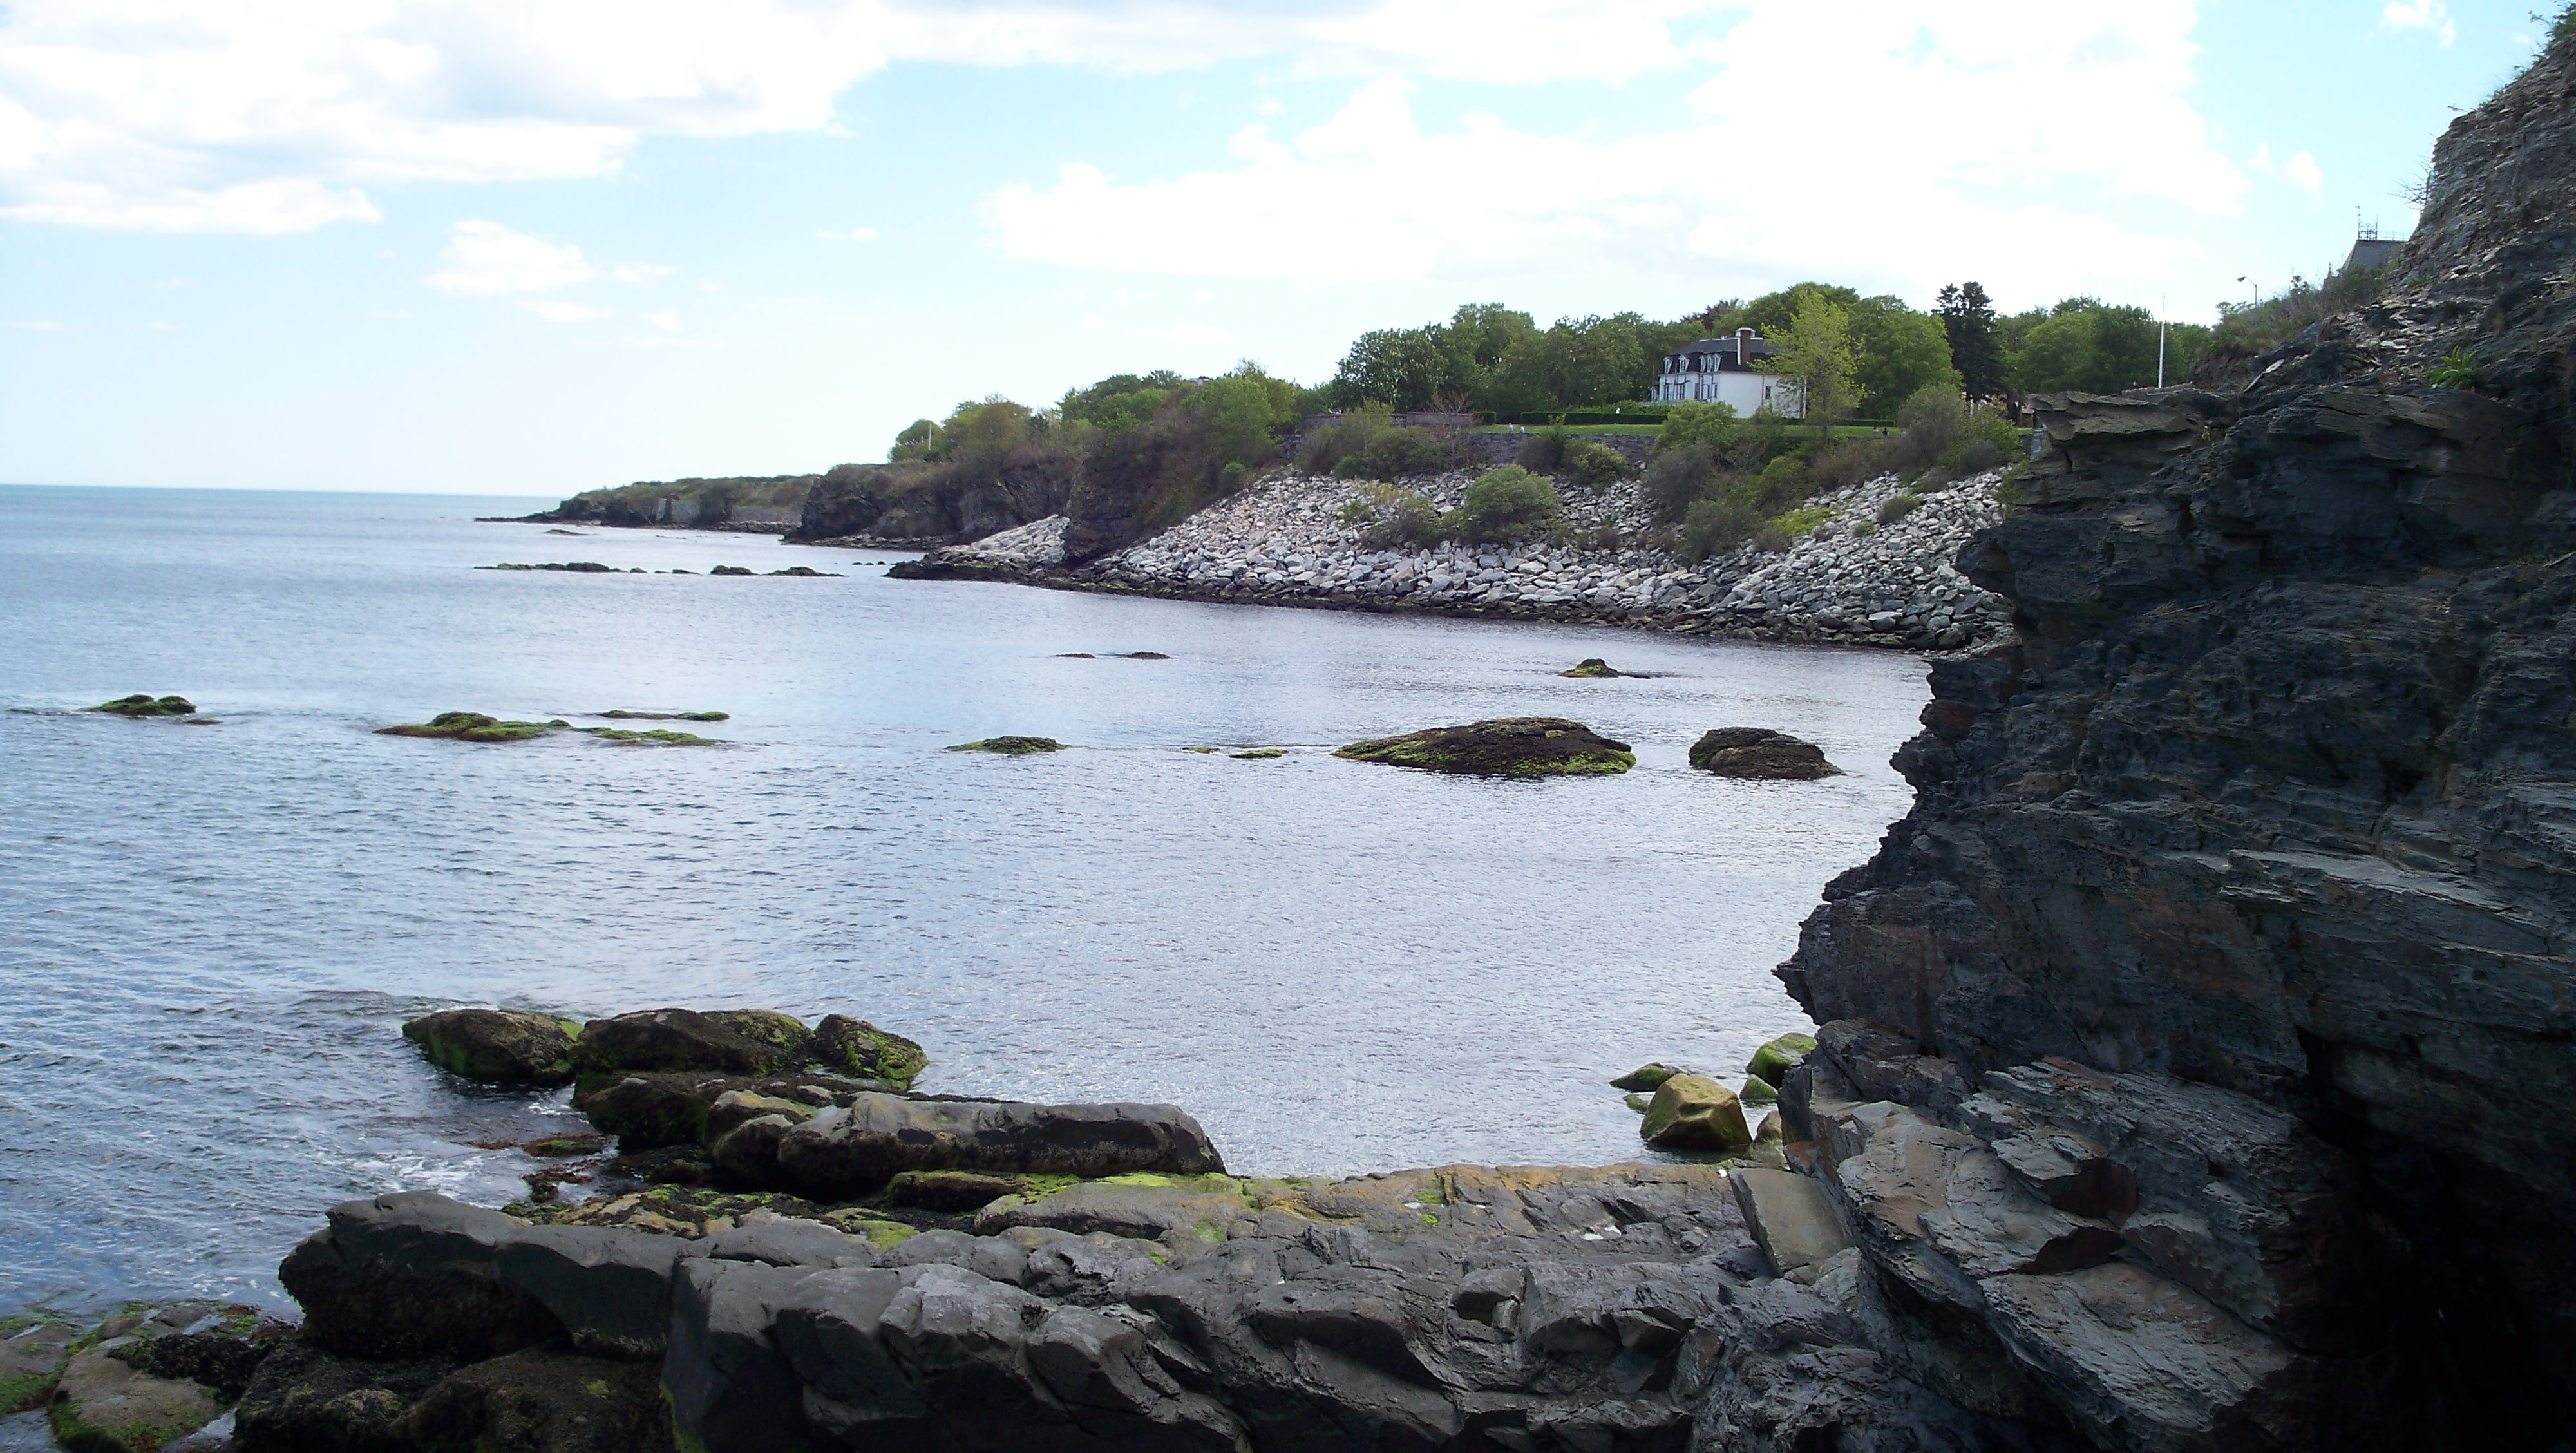 File Newport Shoreline Of Easton Bay Looking South From Cliffside Overlook At East End Of